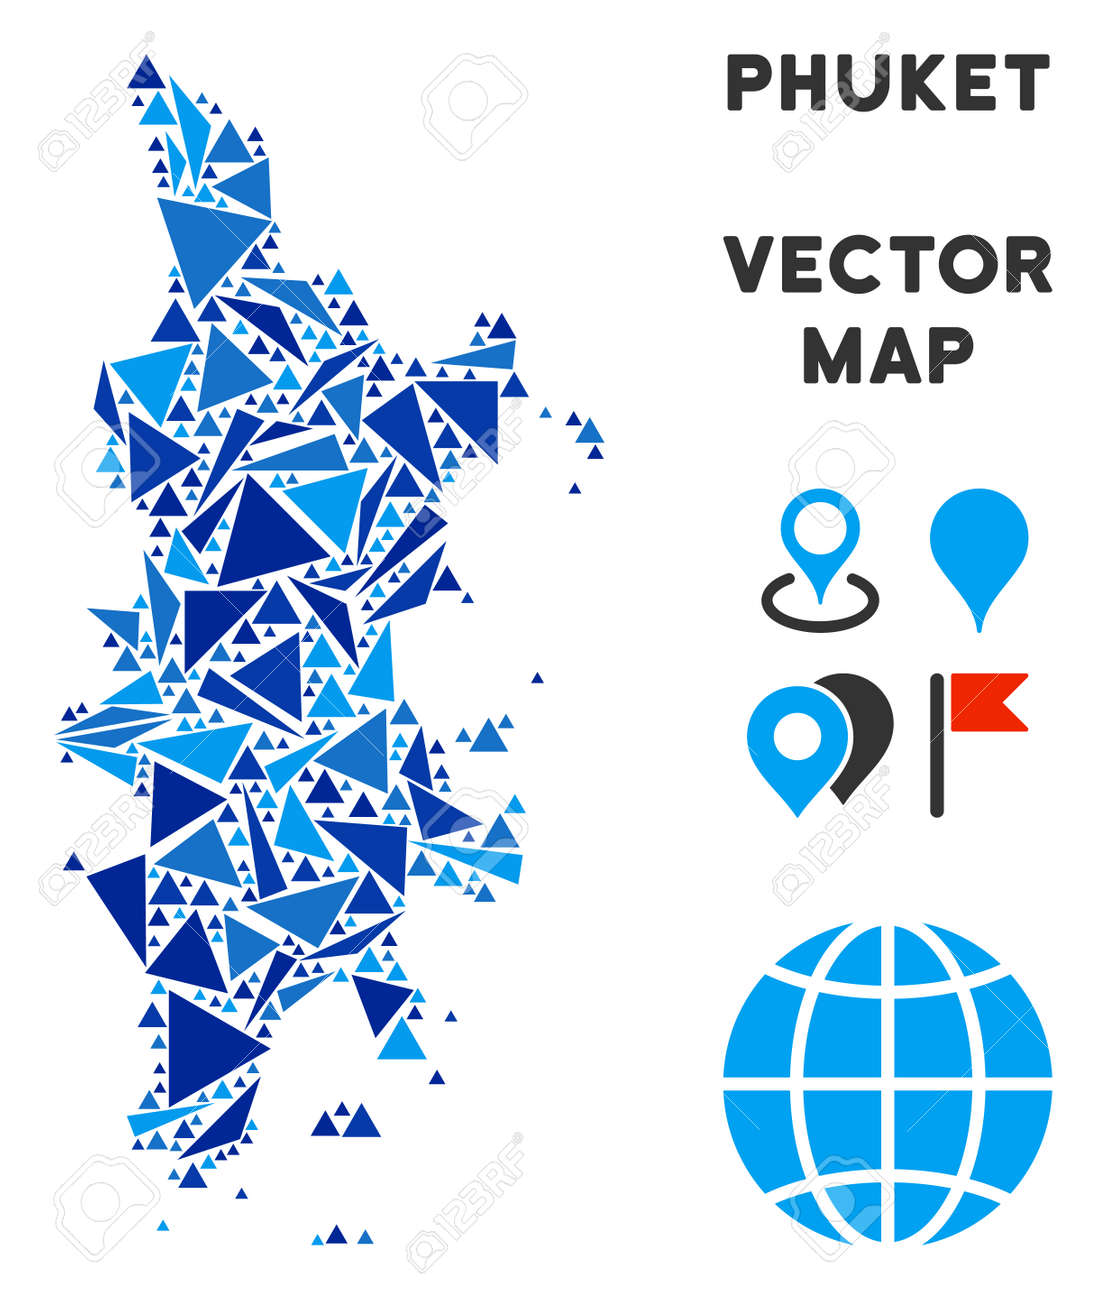 phuket map collage of blue triangle items in various sizes and